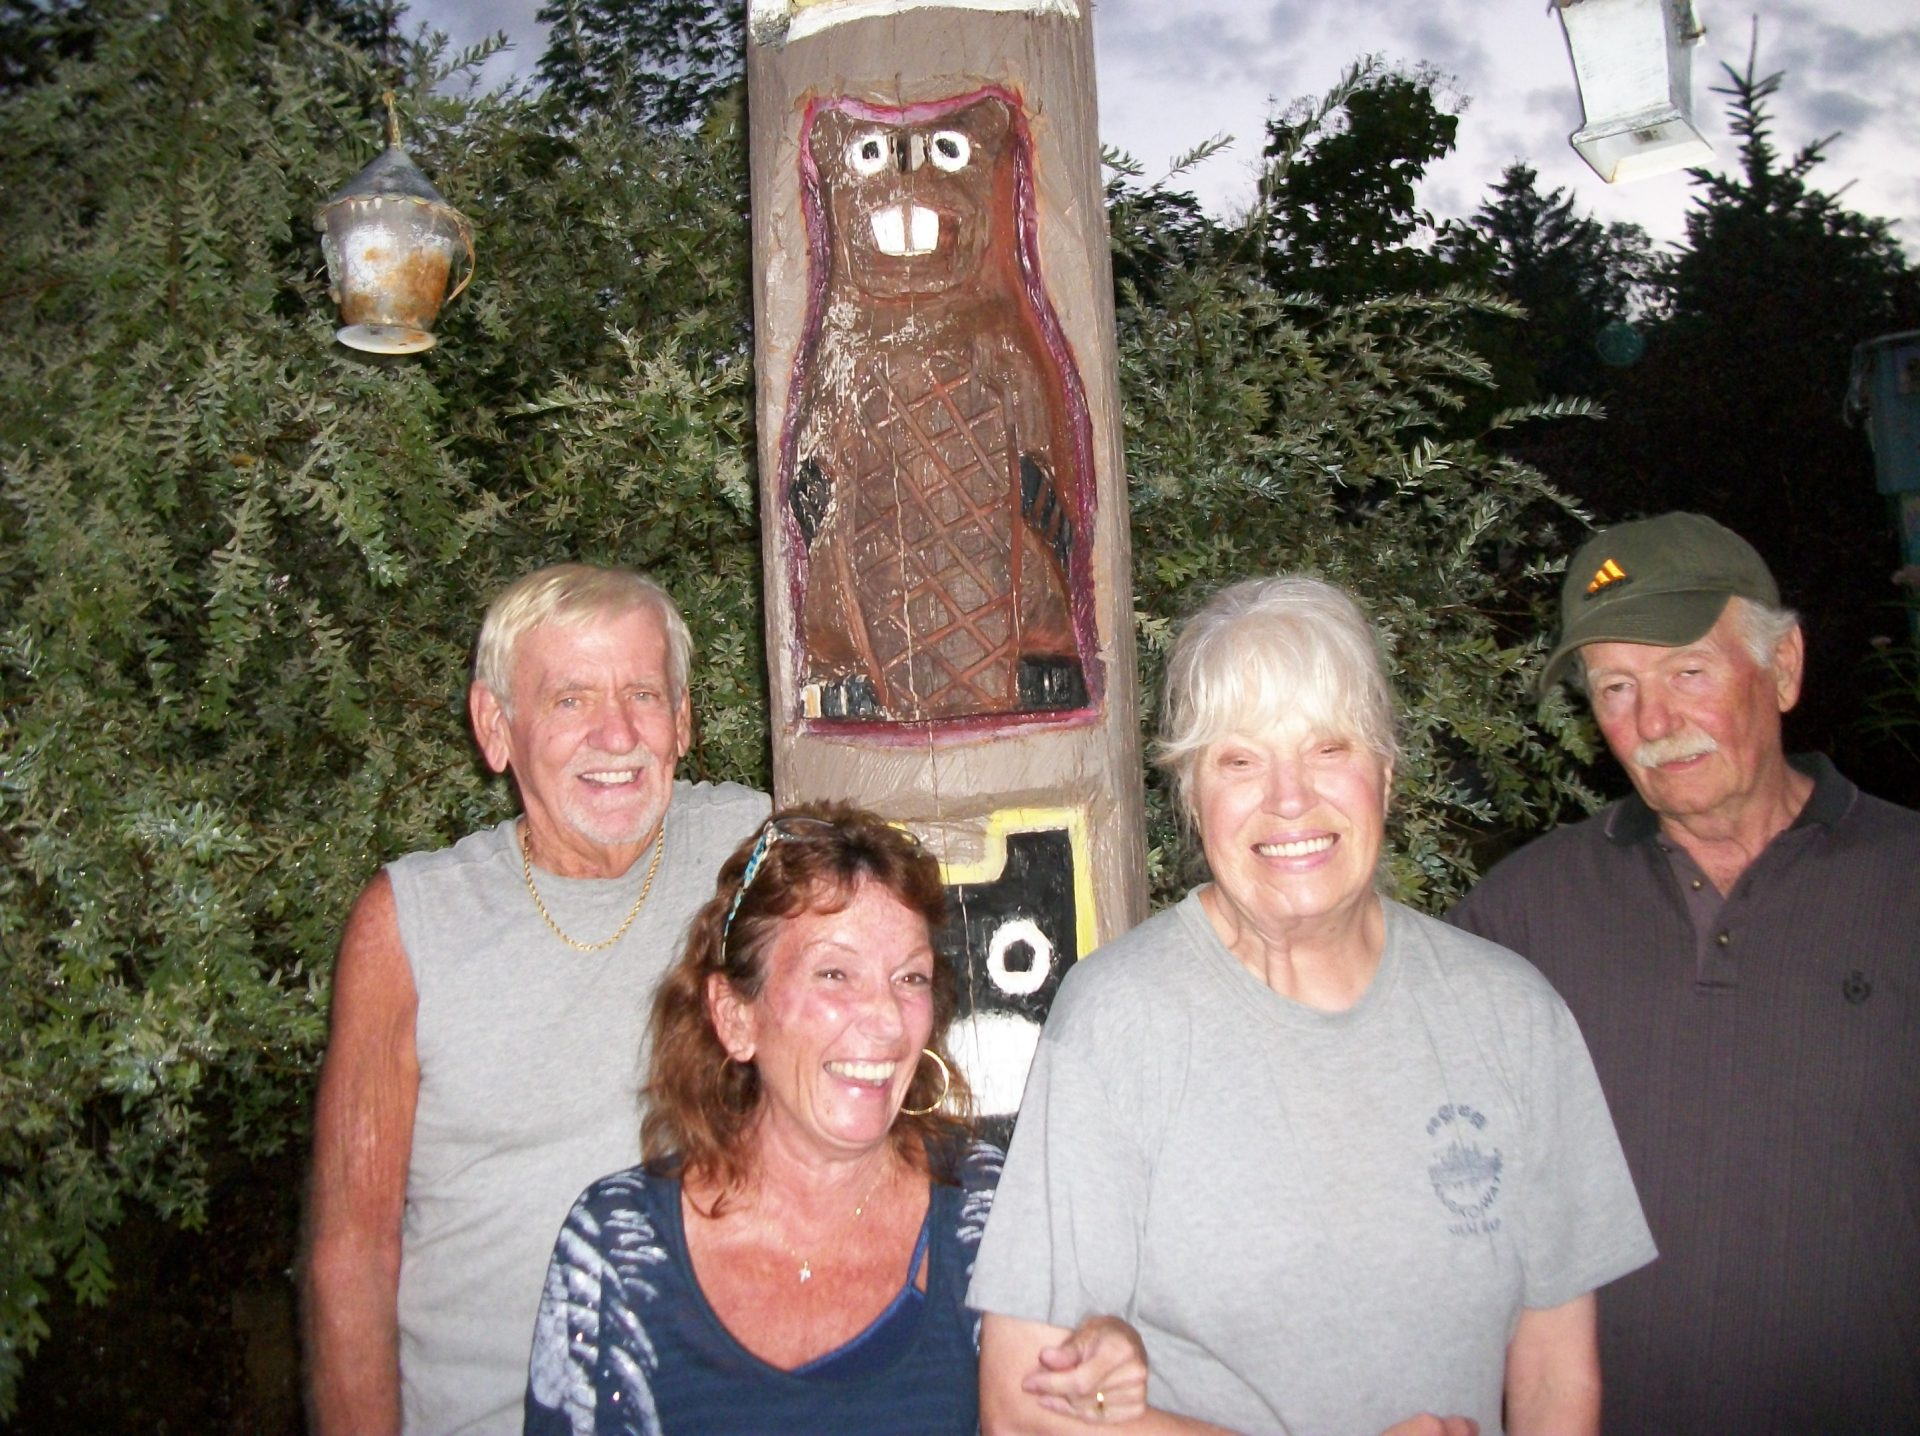 dick, shelly, denny, gail in Wisconsin